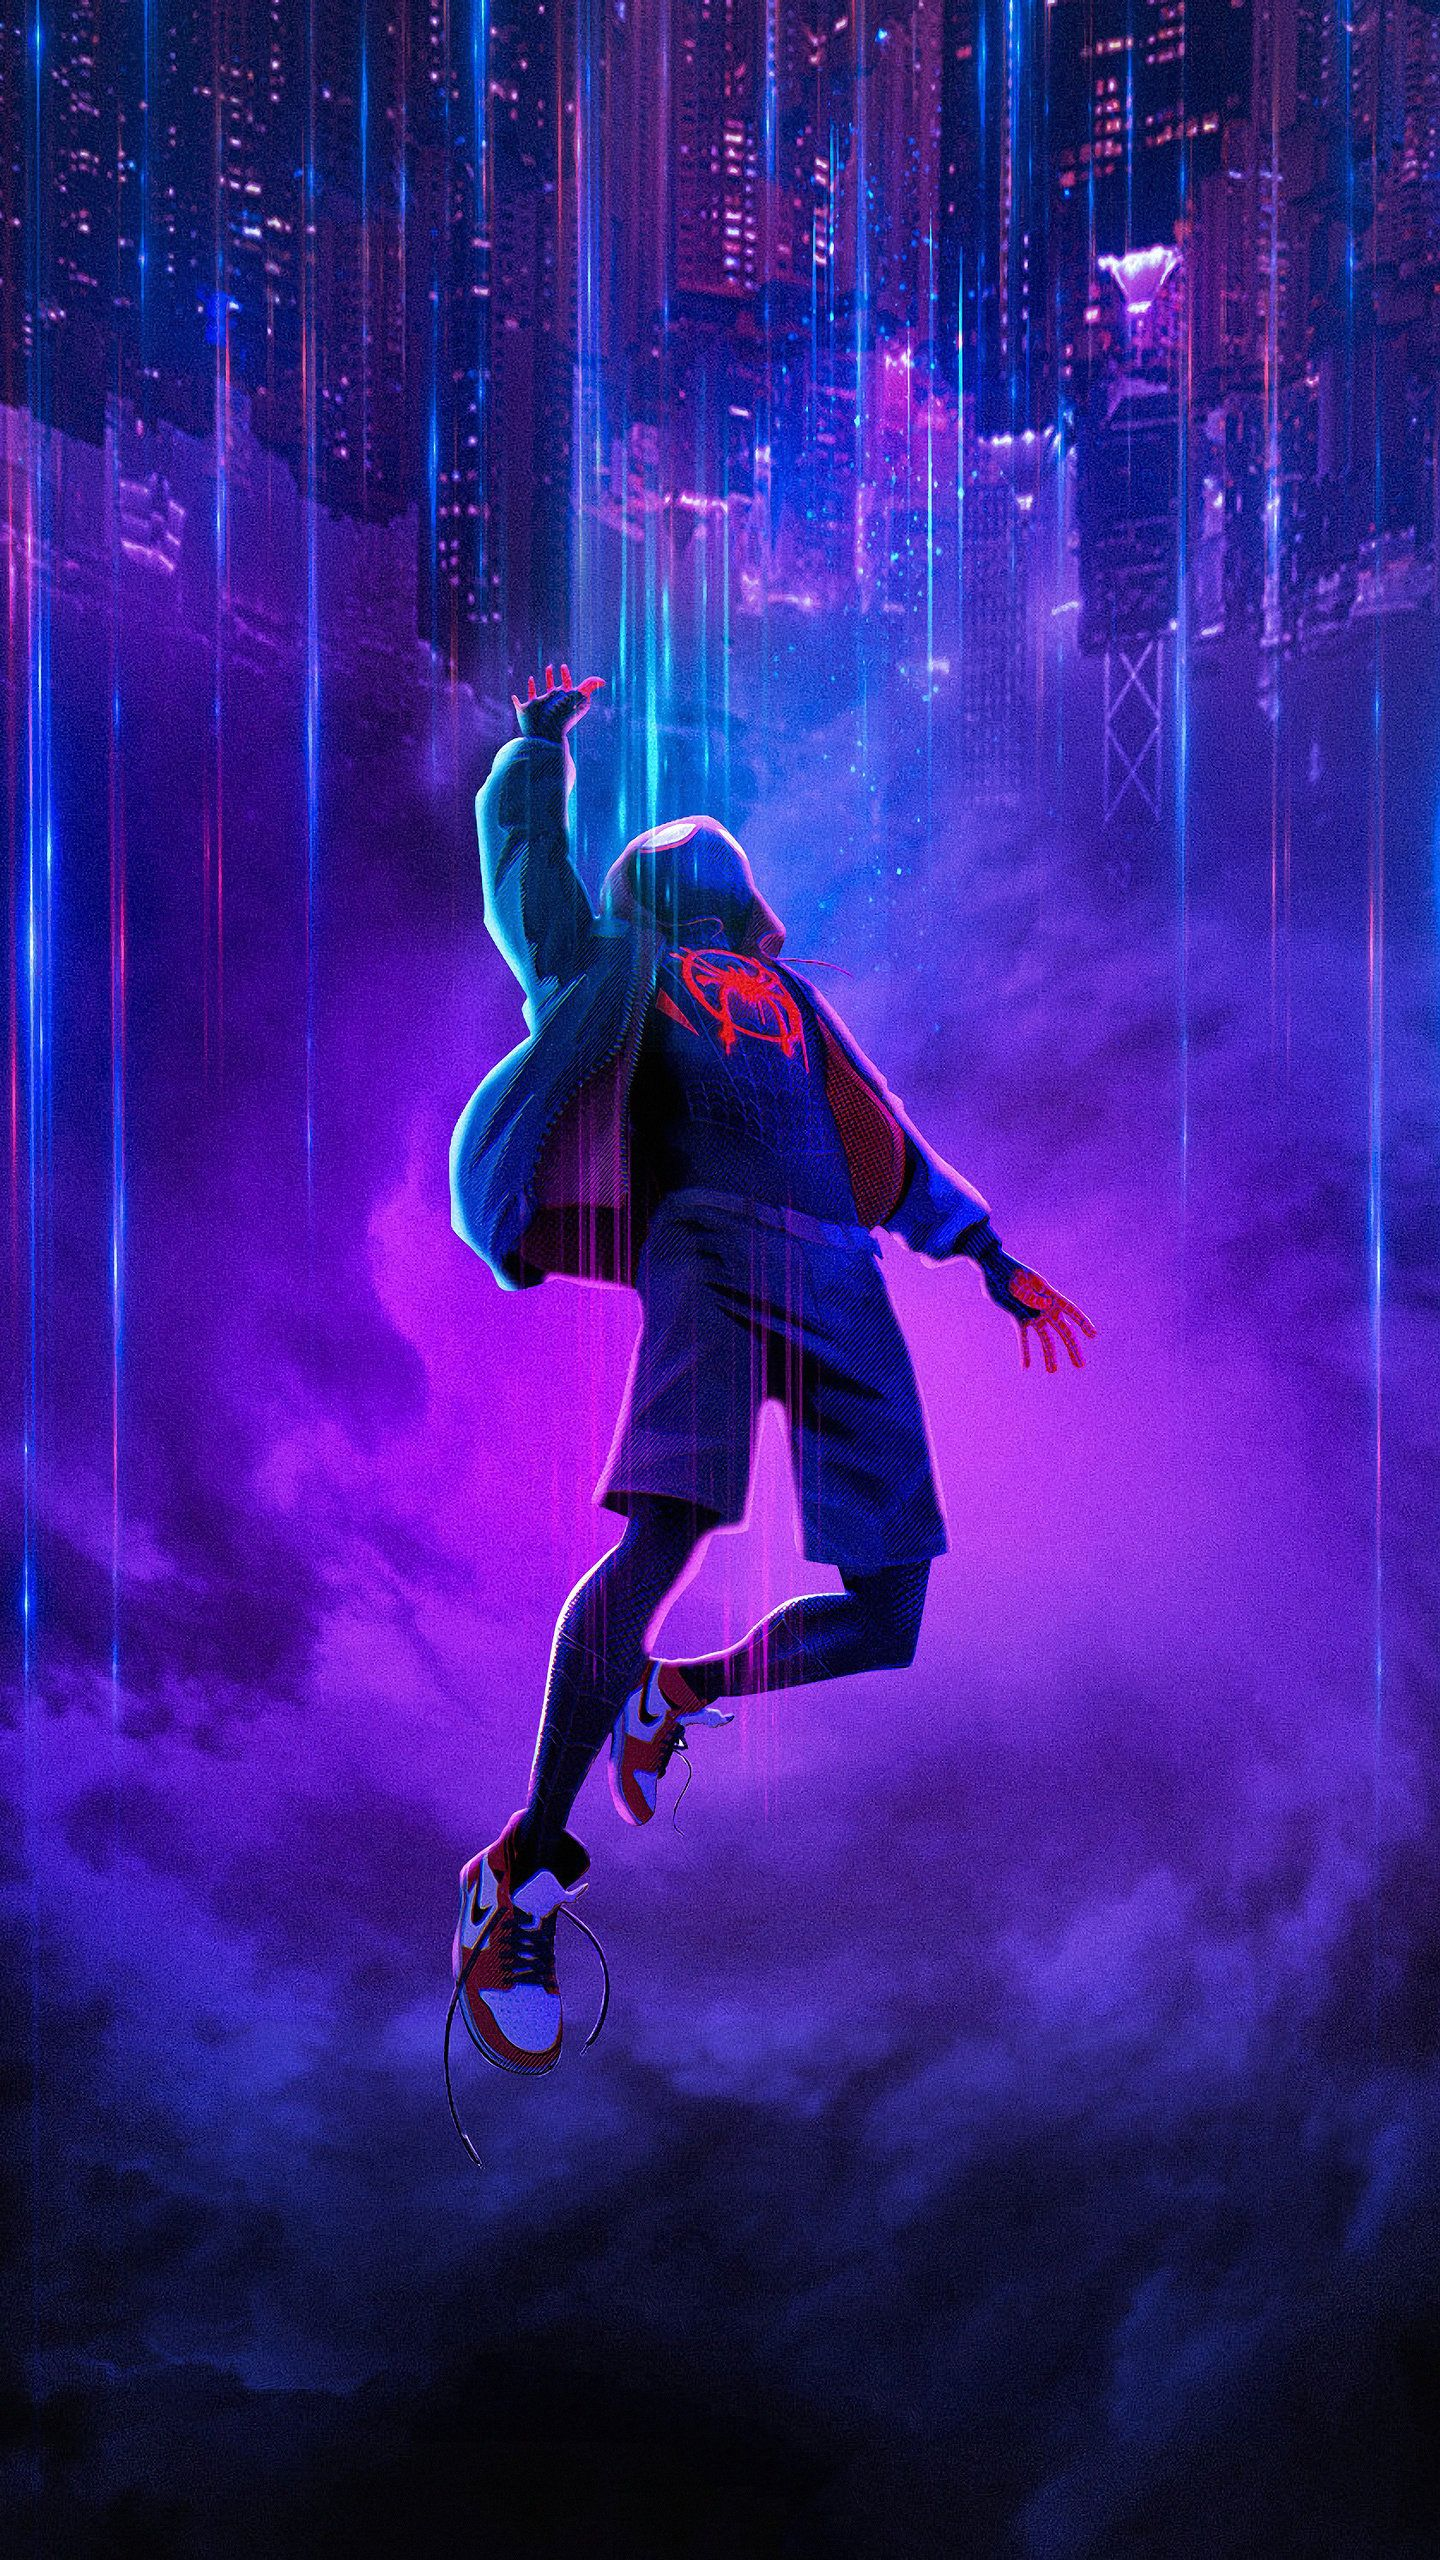 Miles Morales Spider New HD Wallpaper (1440x2560) in 2020